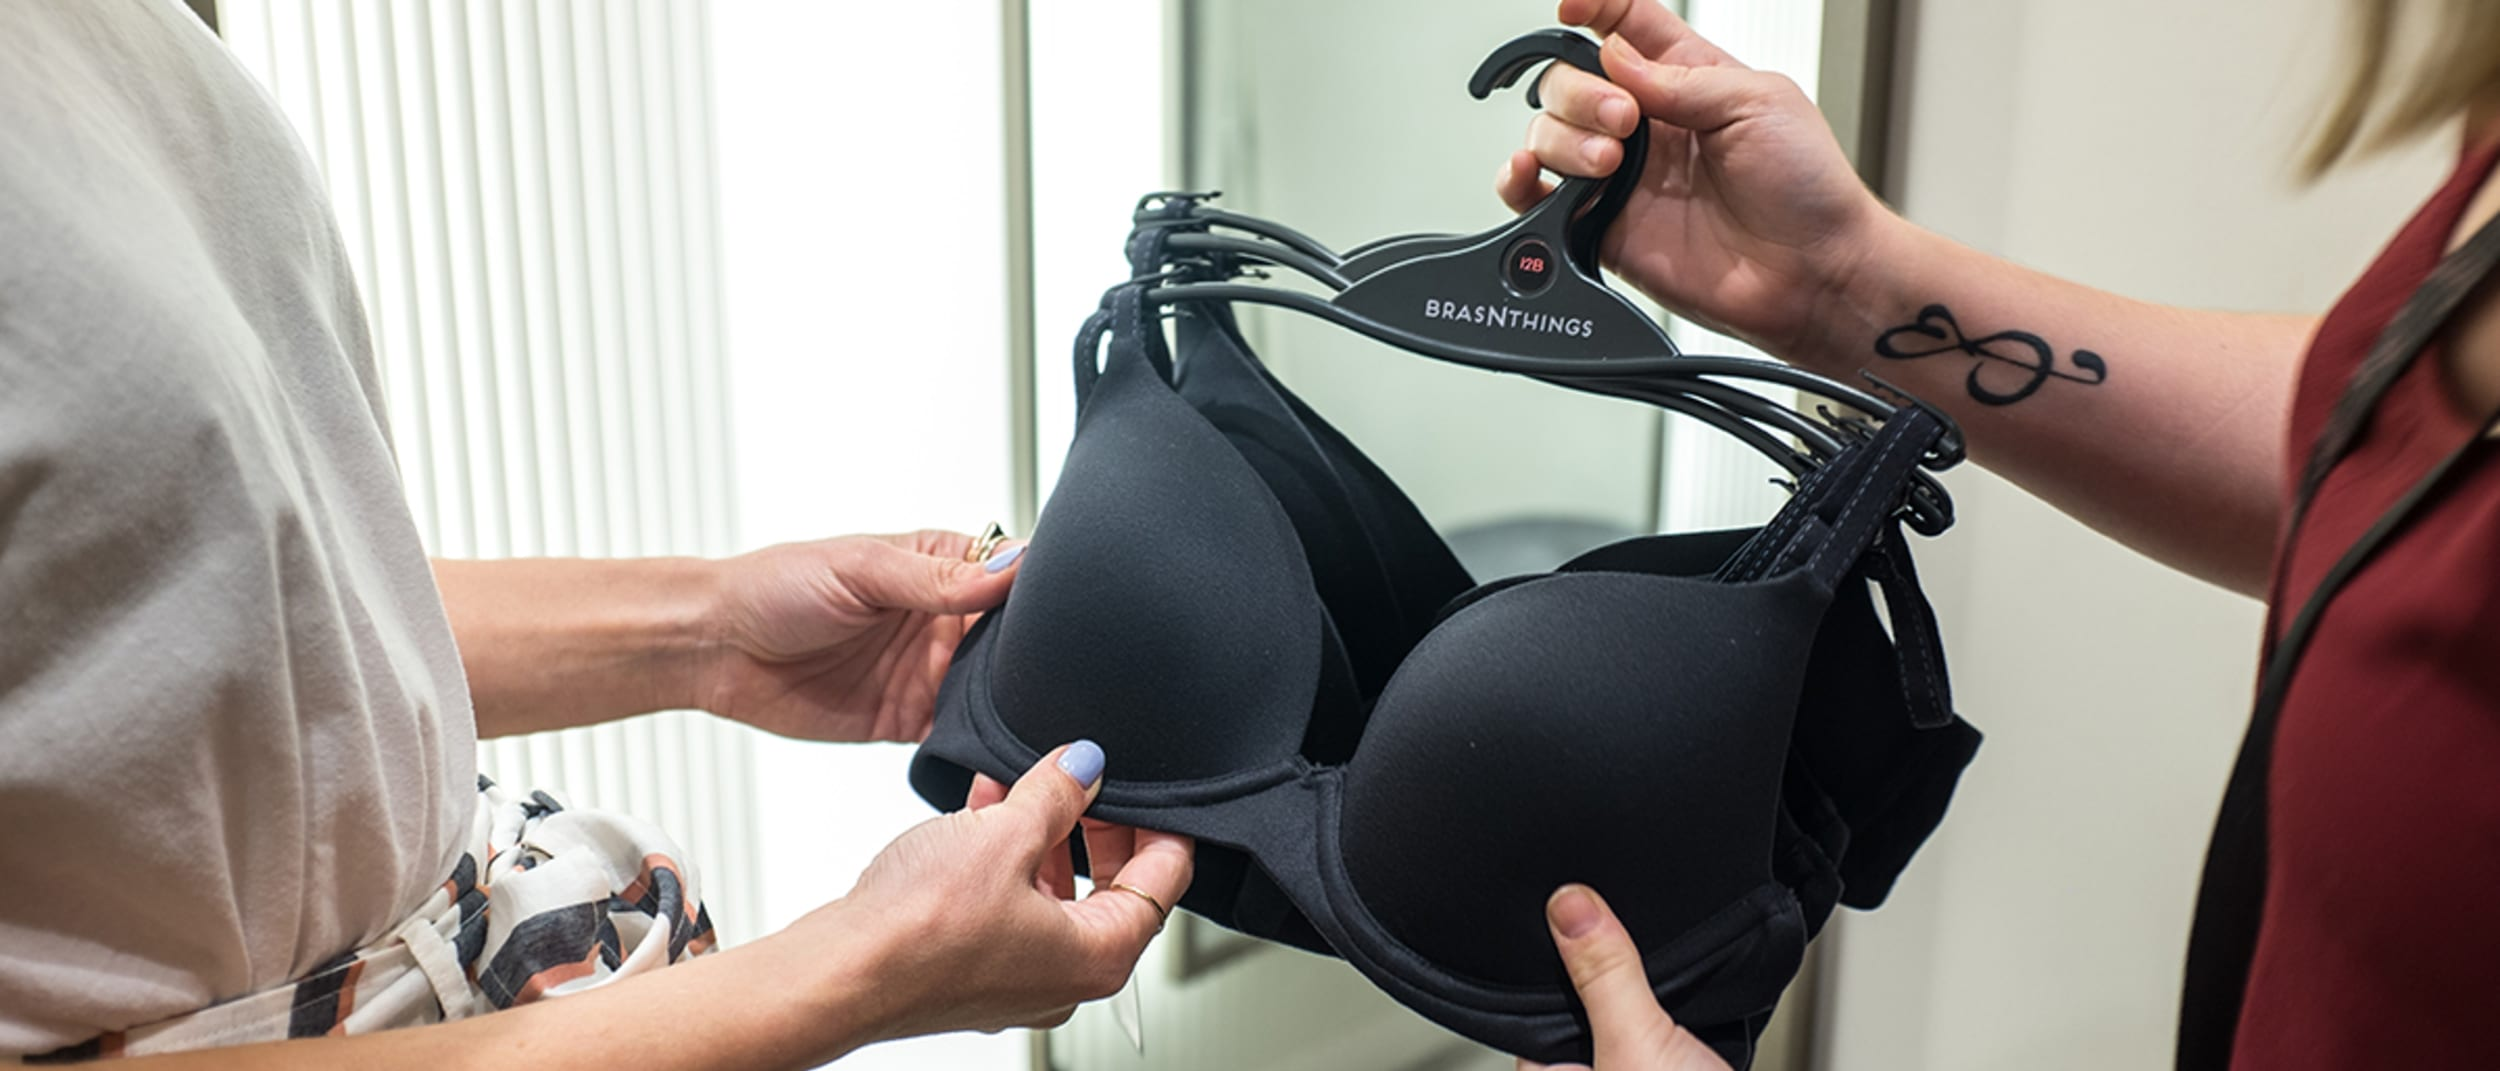 Bras n Things: what happens in a bra fitting?